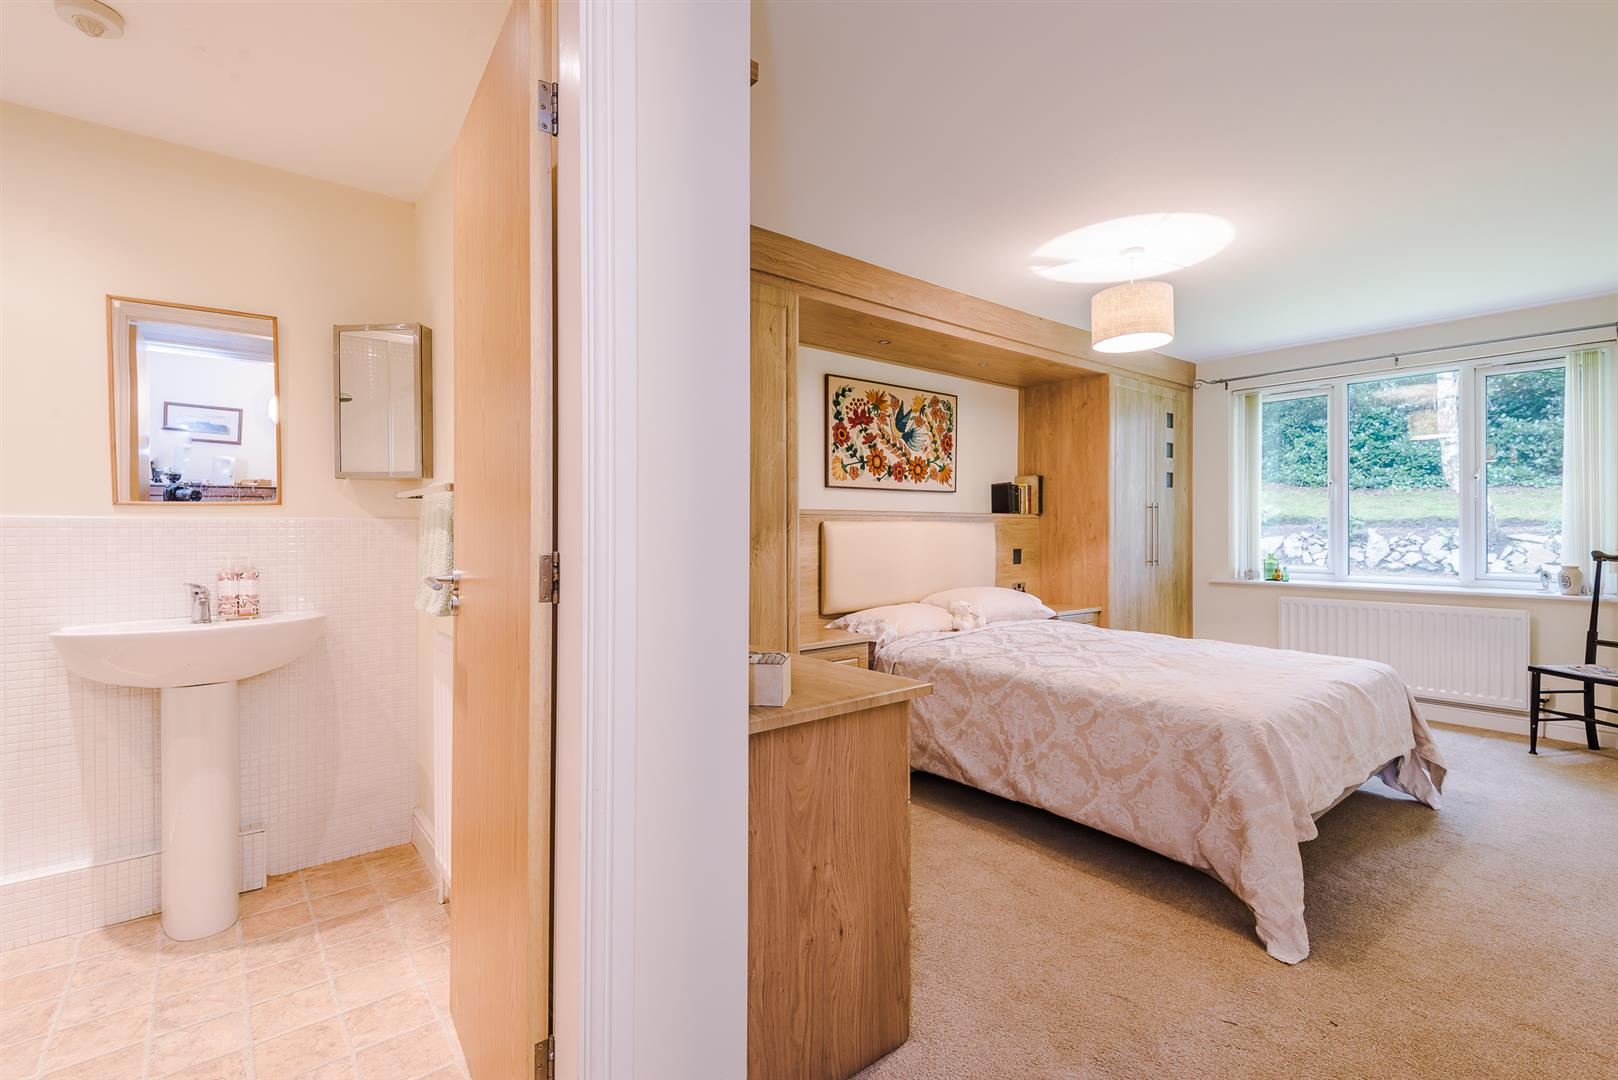 2 Bedroom Apartment Sale Agreed Image 6